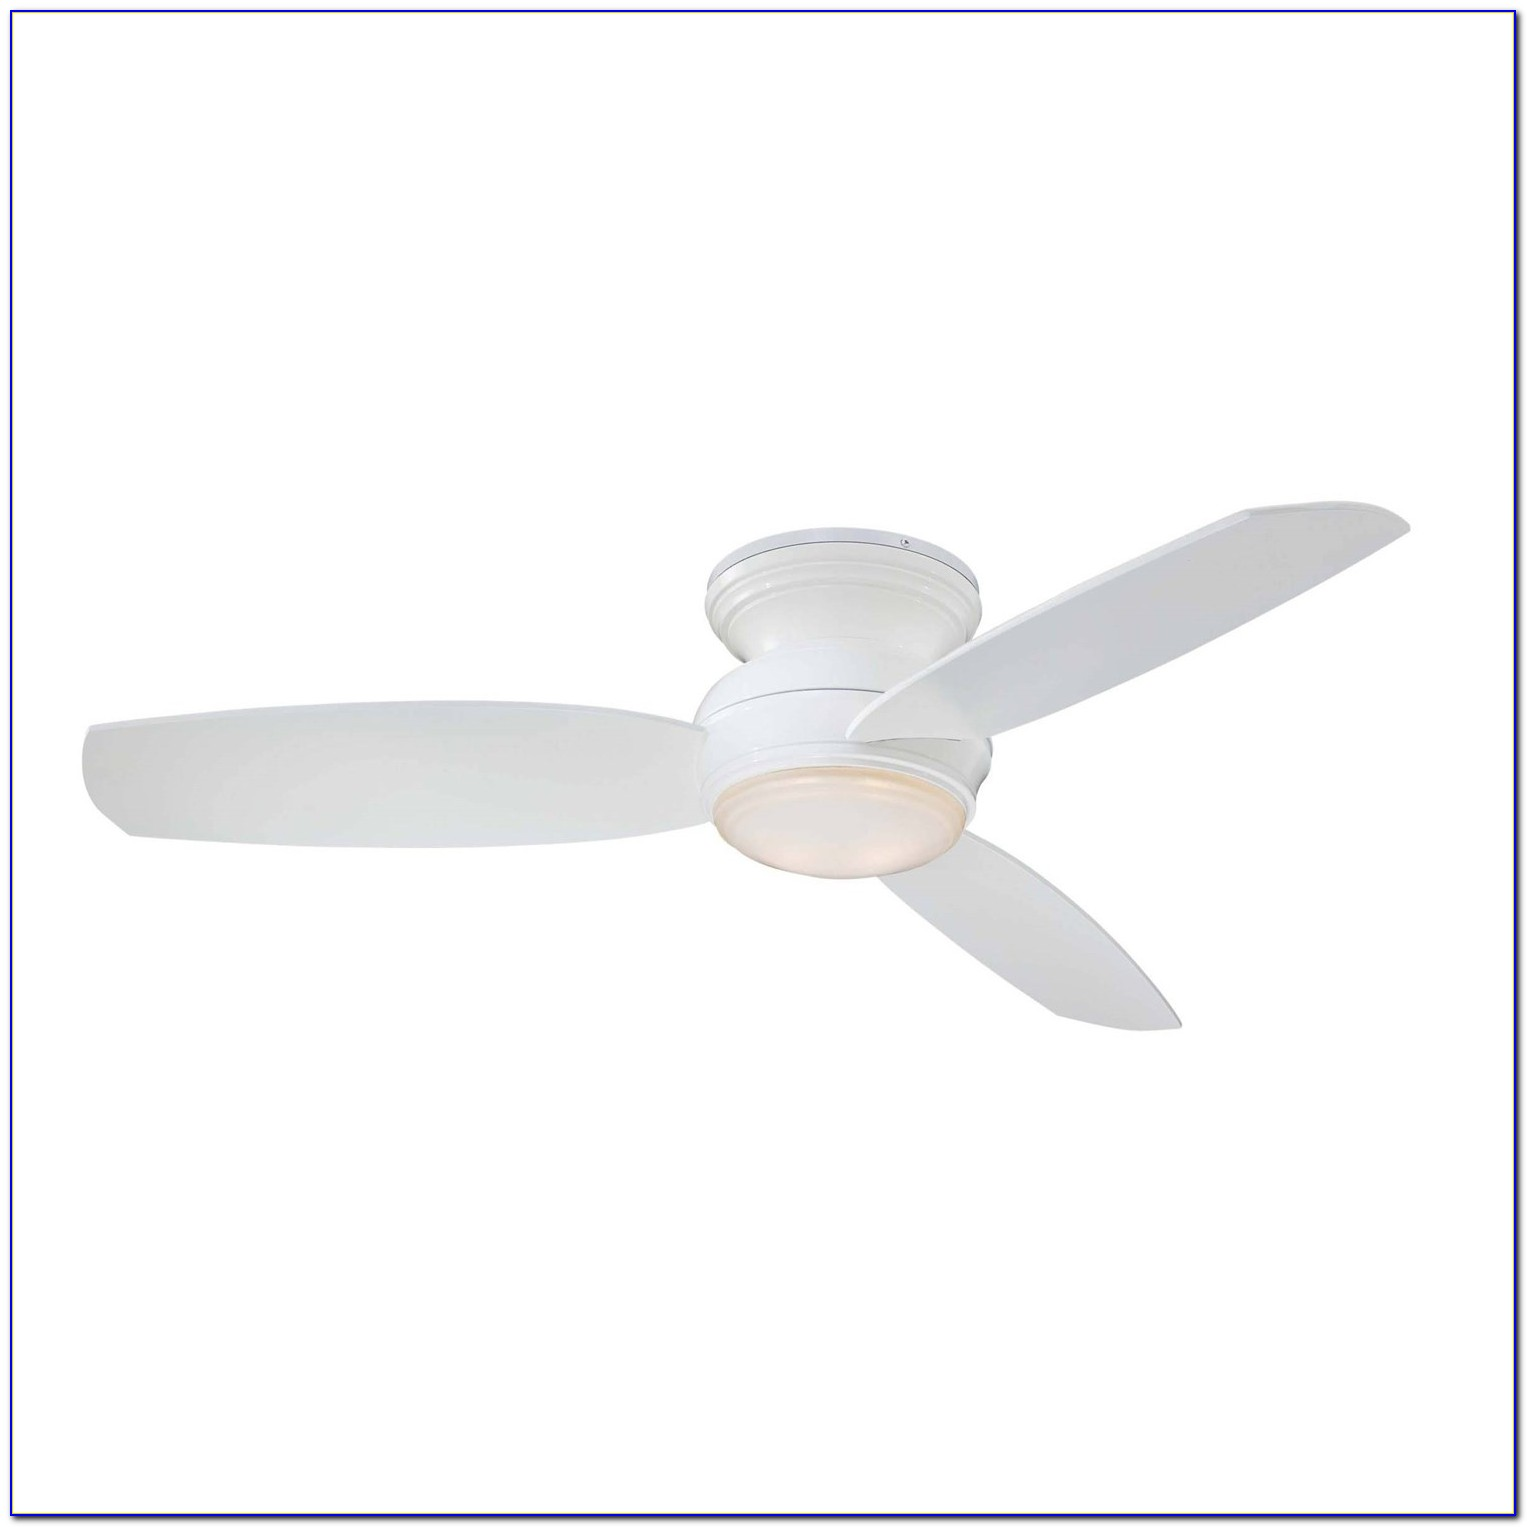 3 Blade White Ceiling Fan With Light